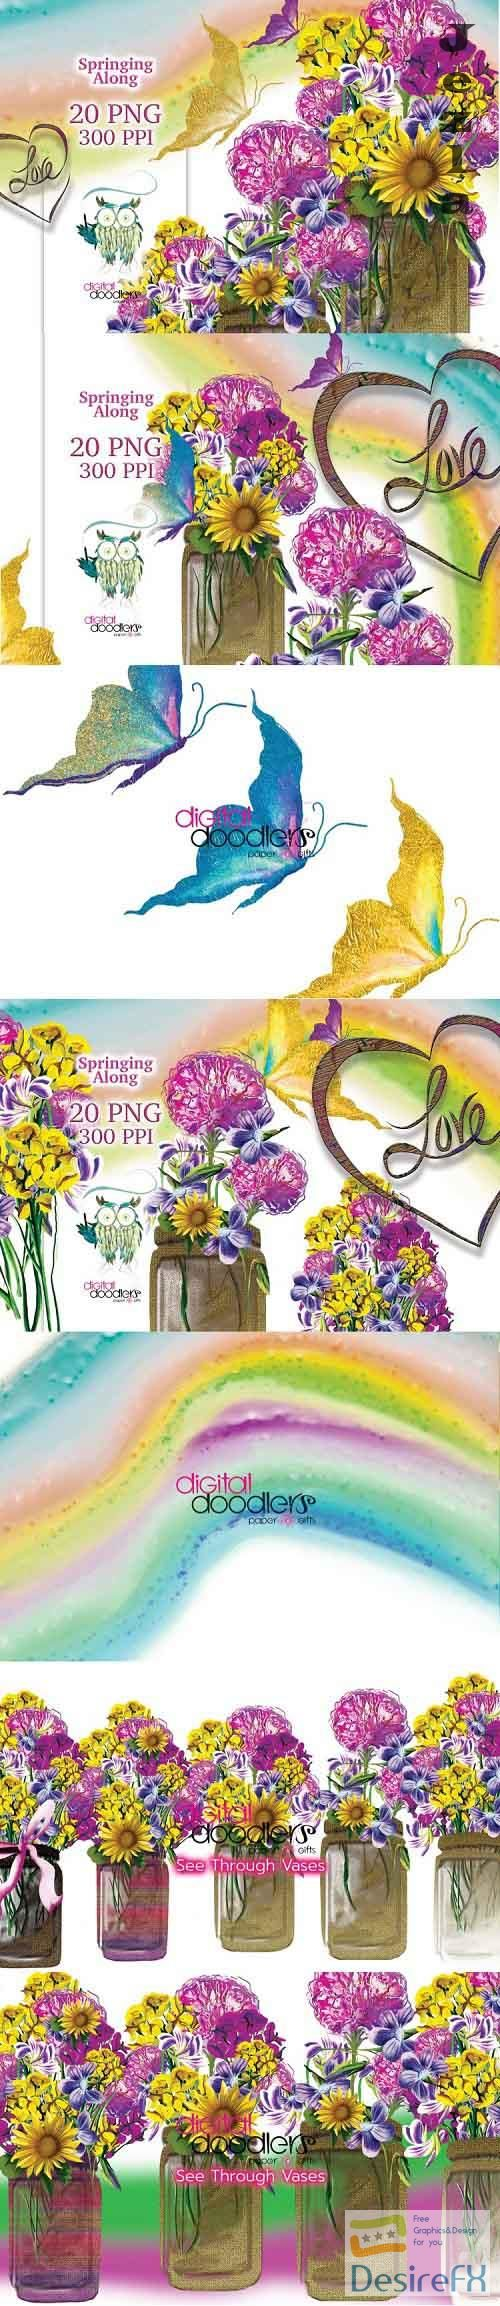 Springing Along Floral Graphics - 1136990